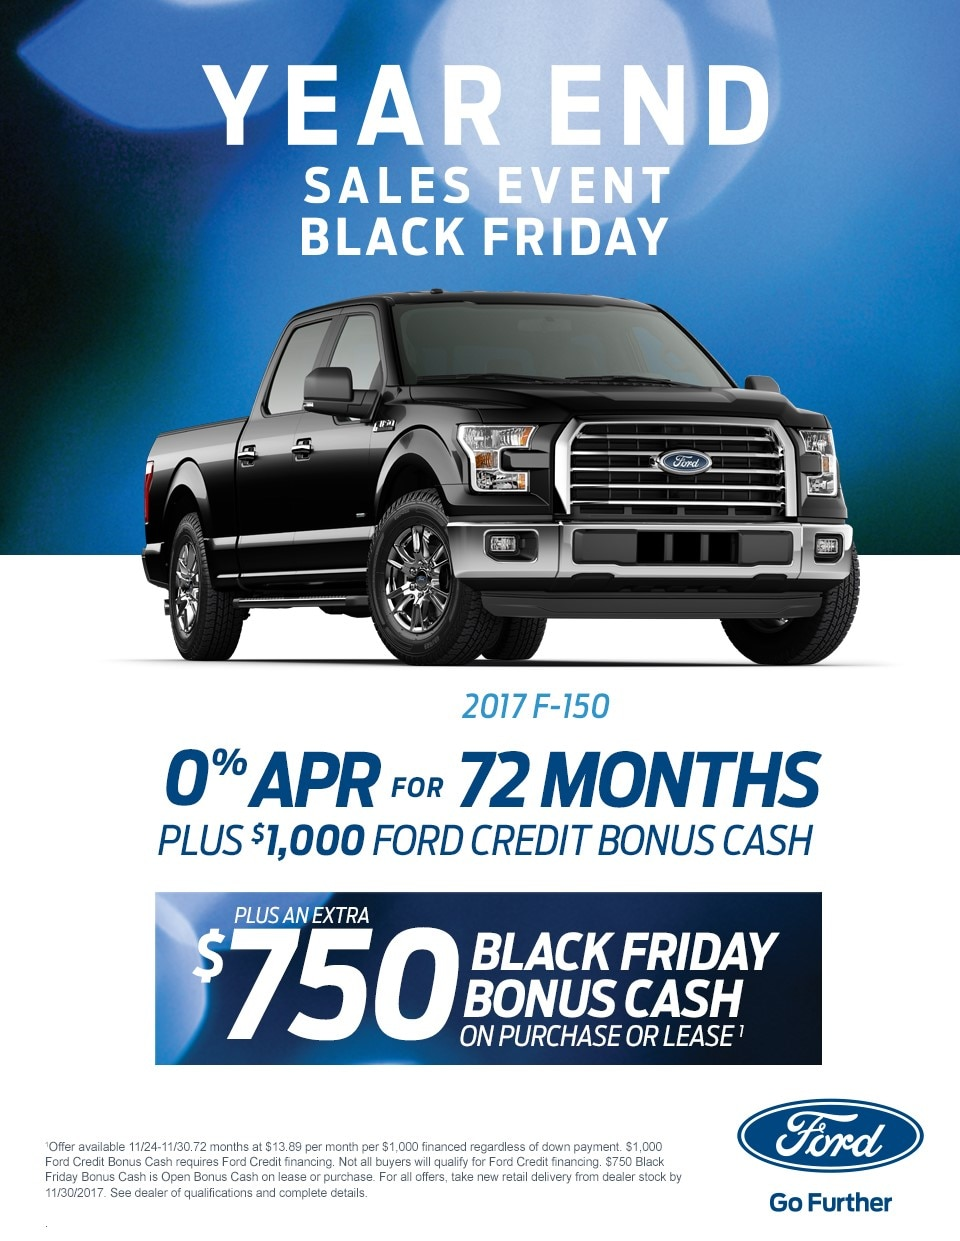 Ford Year End Sales Event Amp Black Friday At Mccafferty